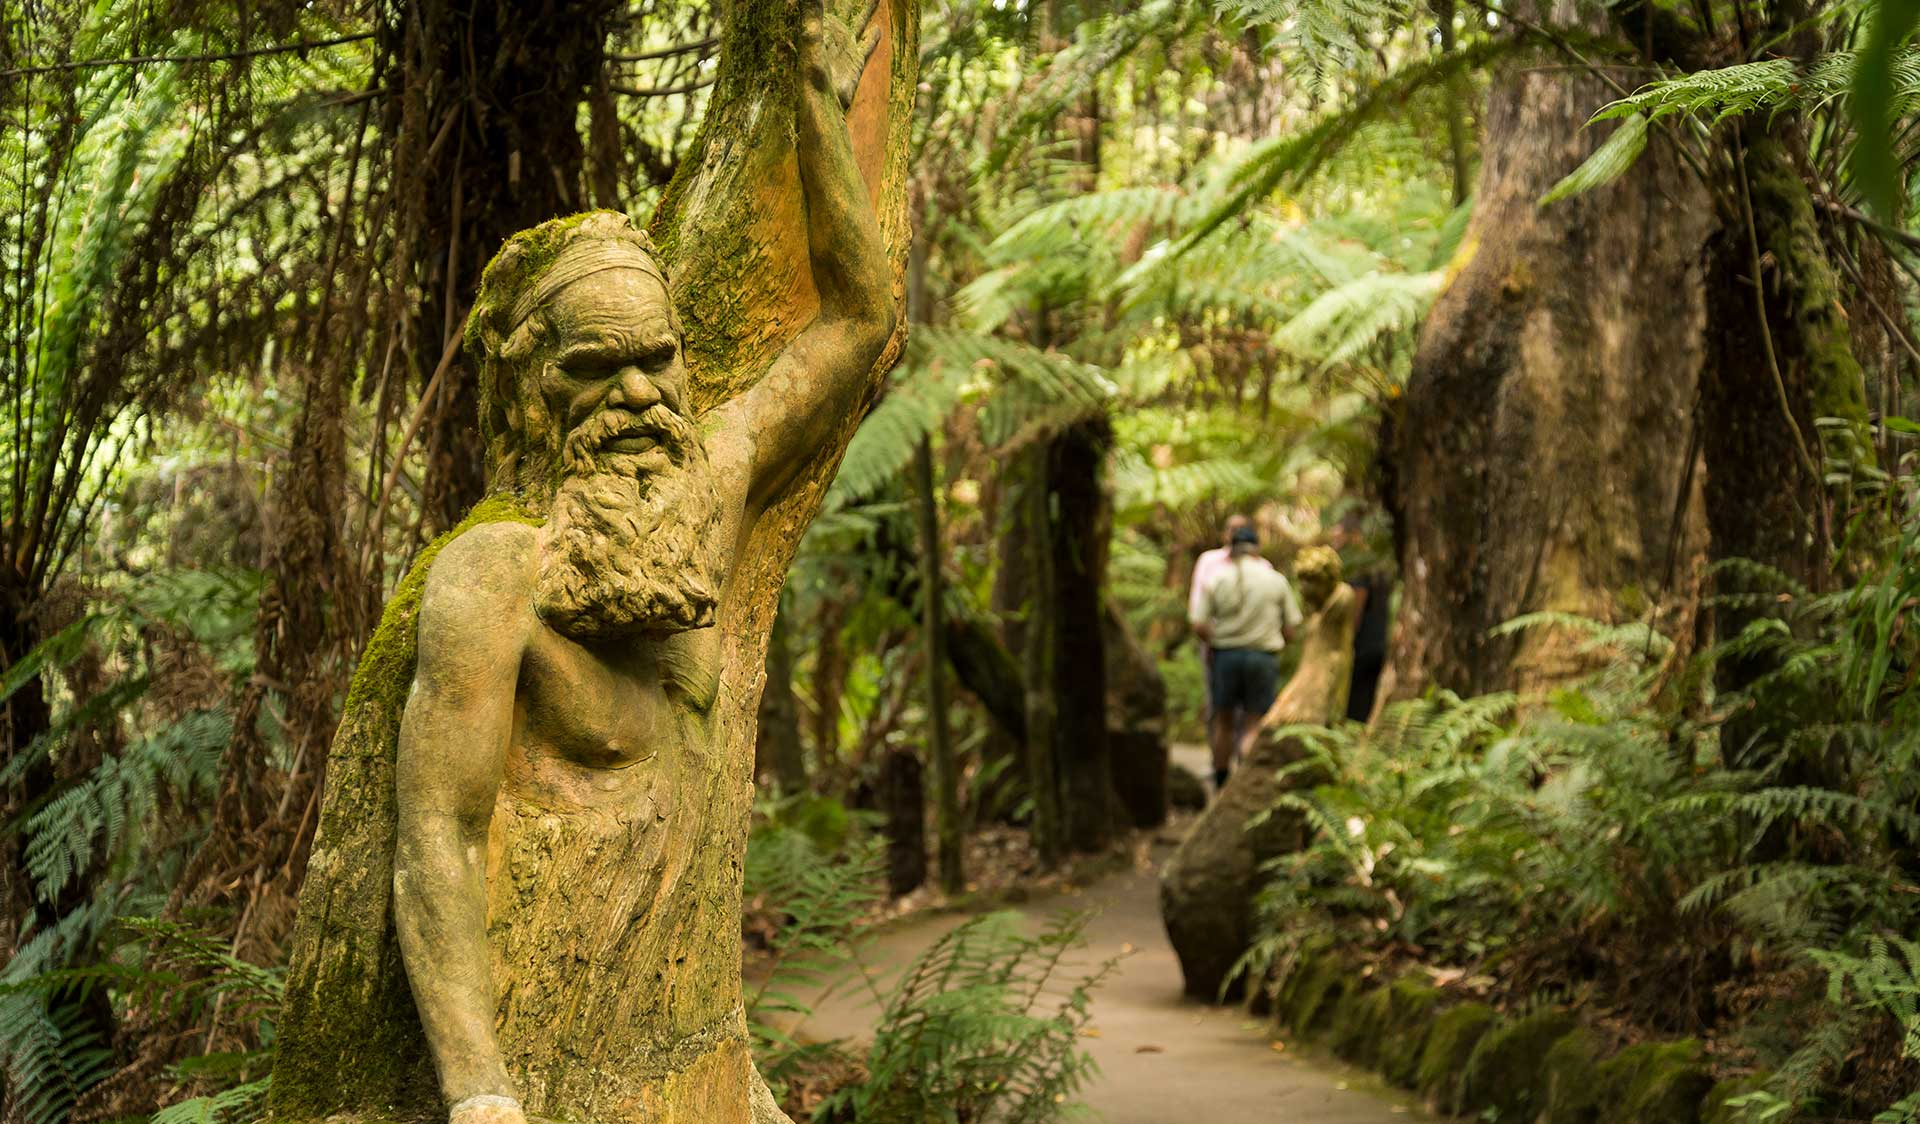 A sculpture looks over a walking path in the William Ricketts Sanctuary.